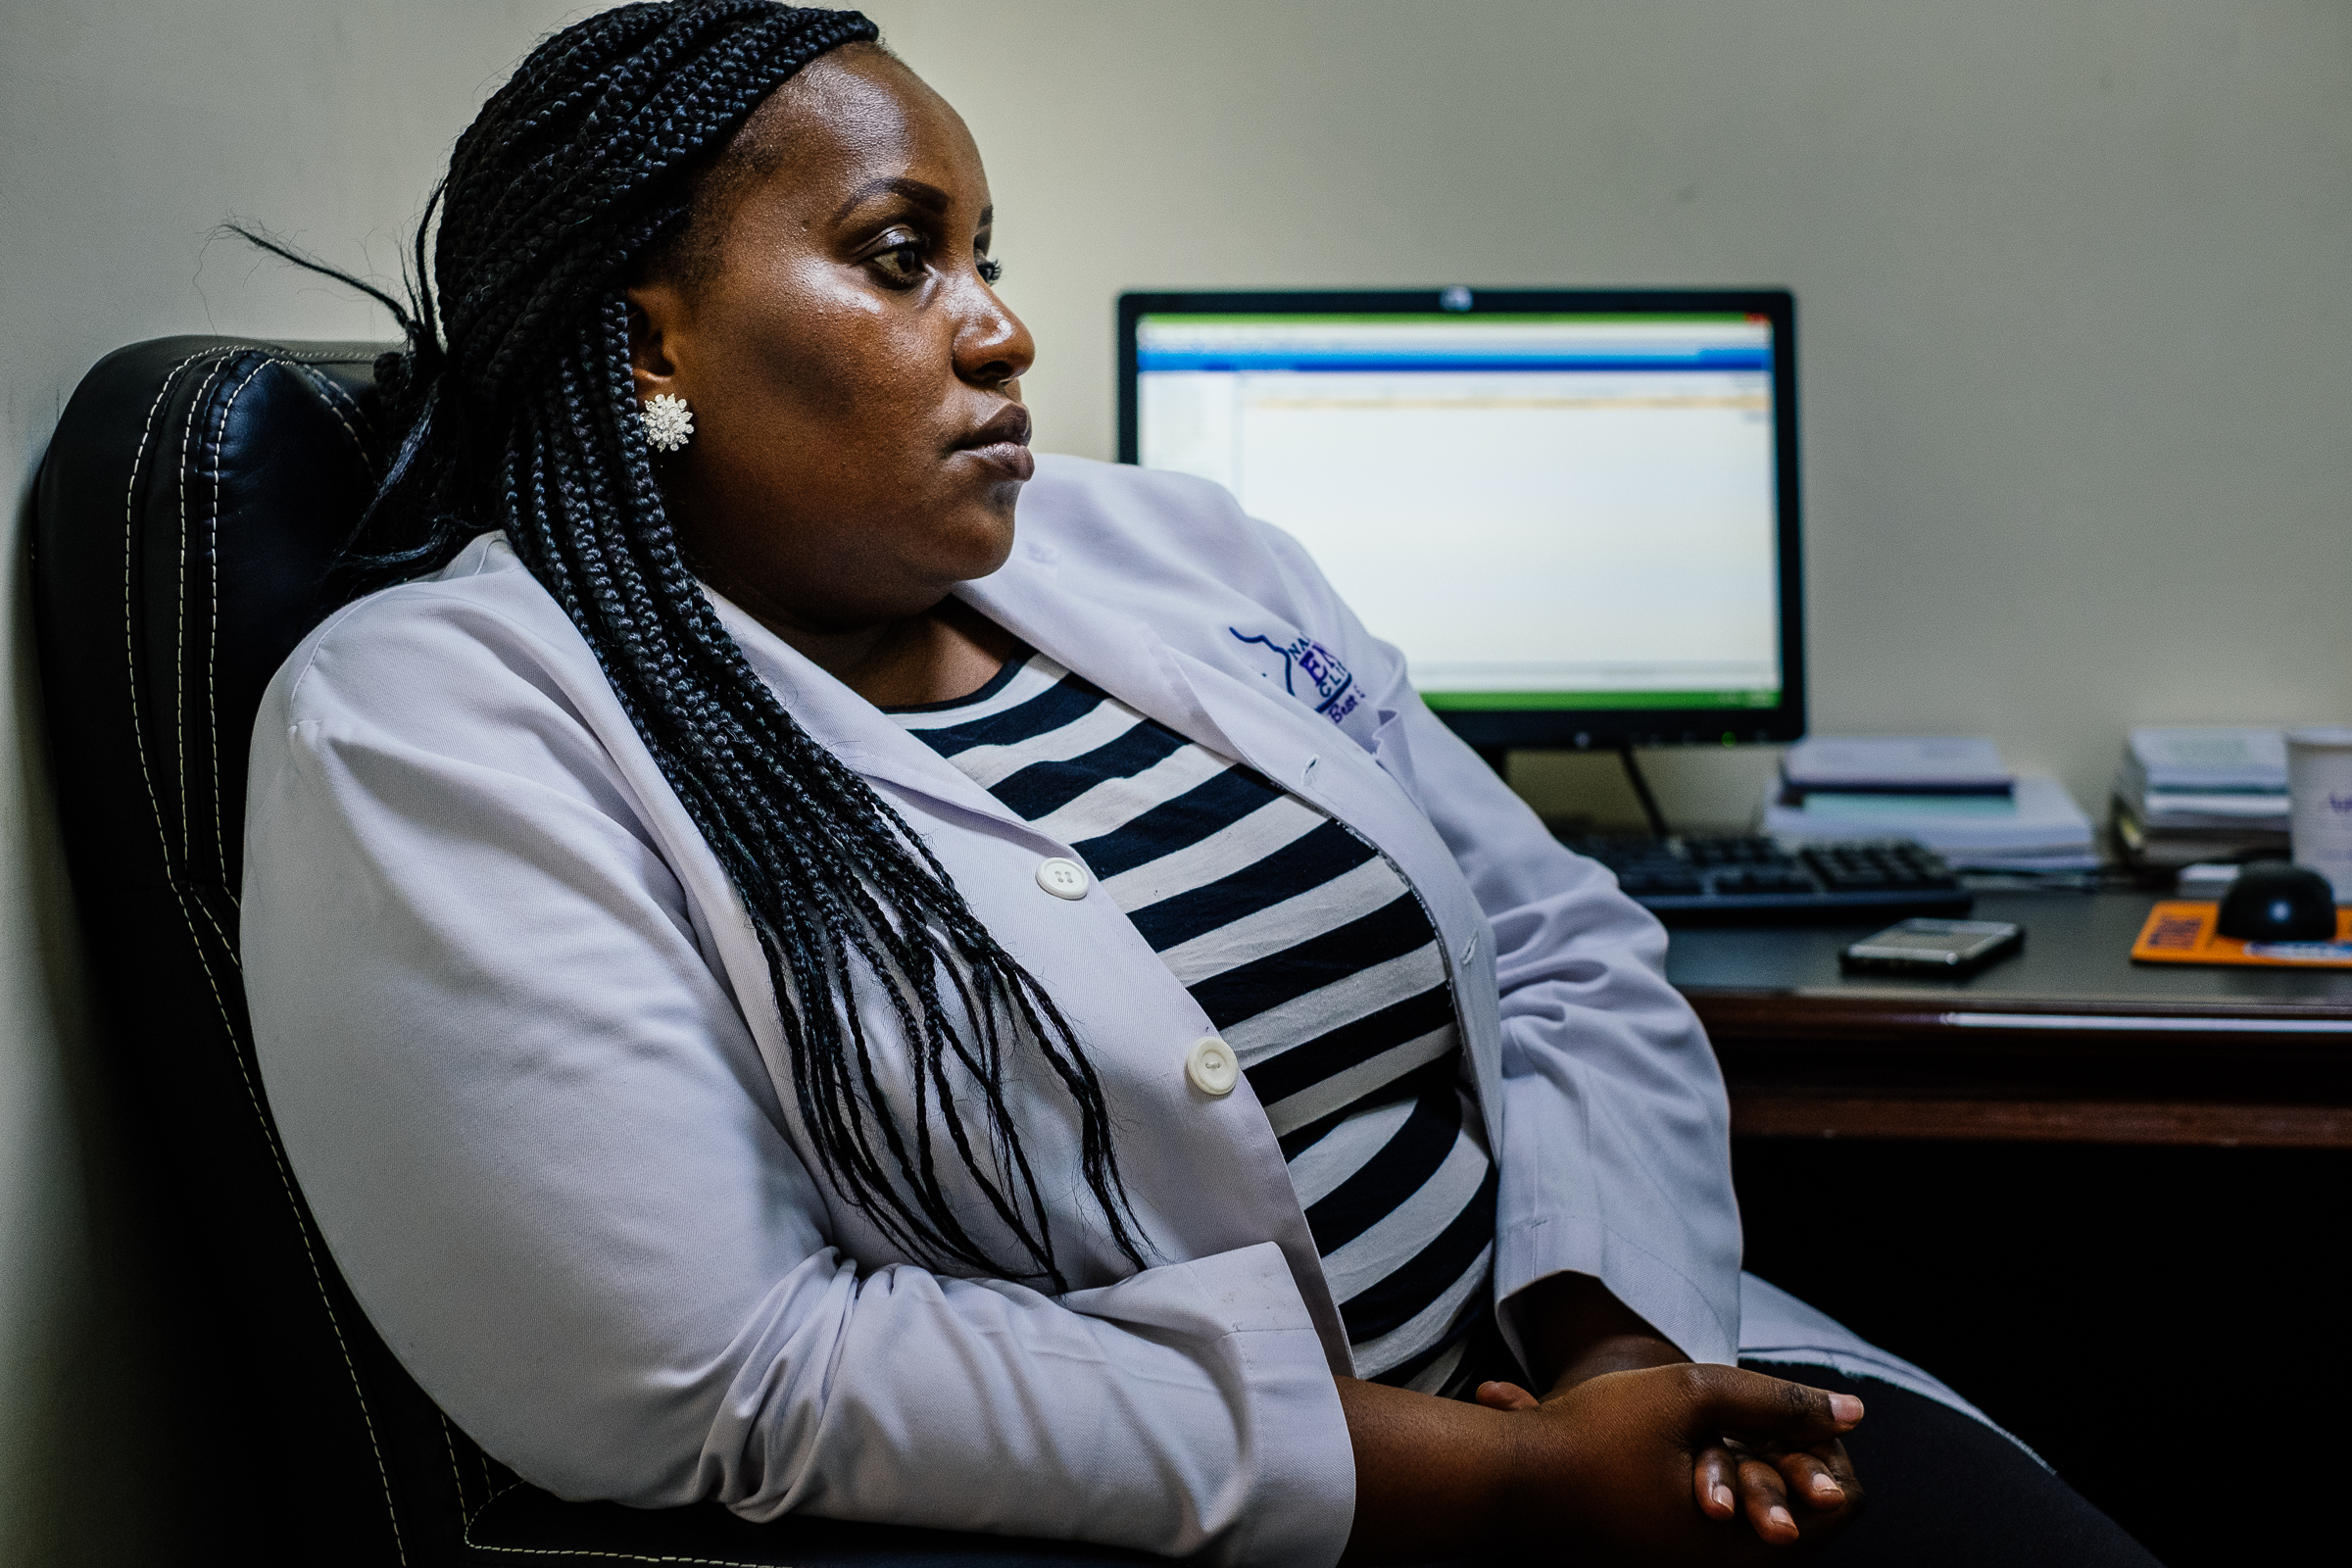 Interview and user testing with Dr Susan, an ENT surgeon in Nairobi.